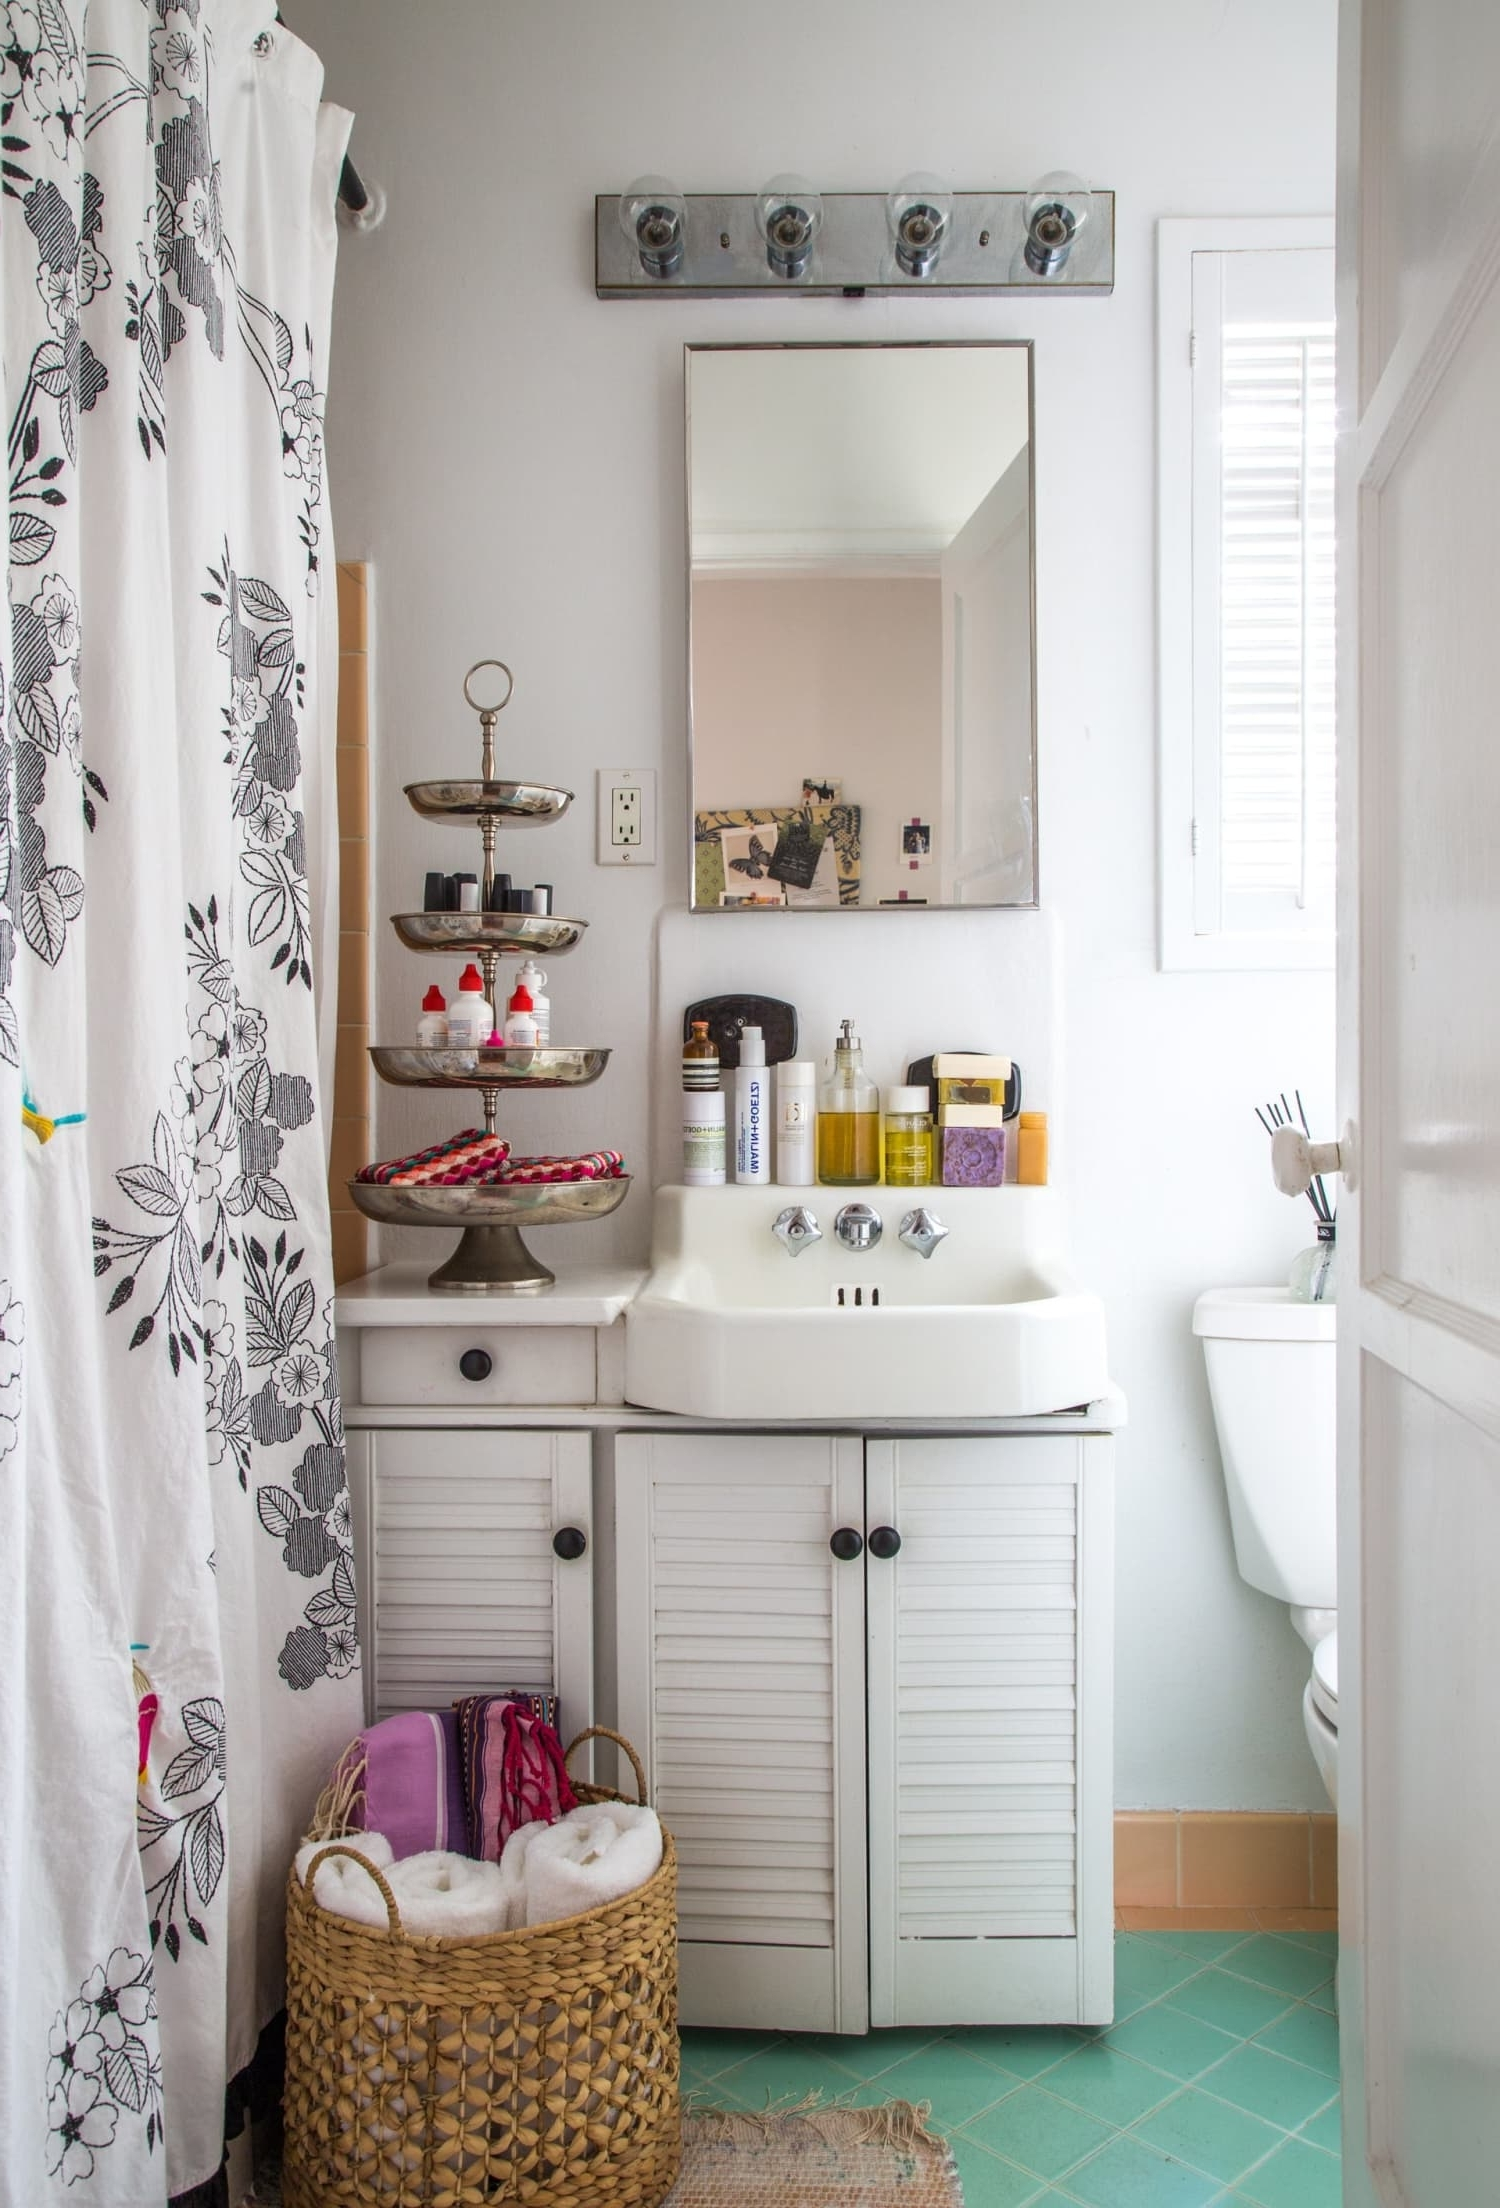 10 Styling Ideas For Small Rental Bathrooms | Apartment Therapy 10+ Tiny Rental Bathroom Ideas